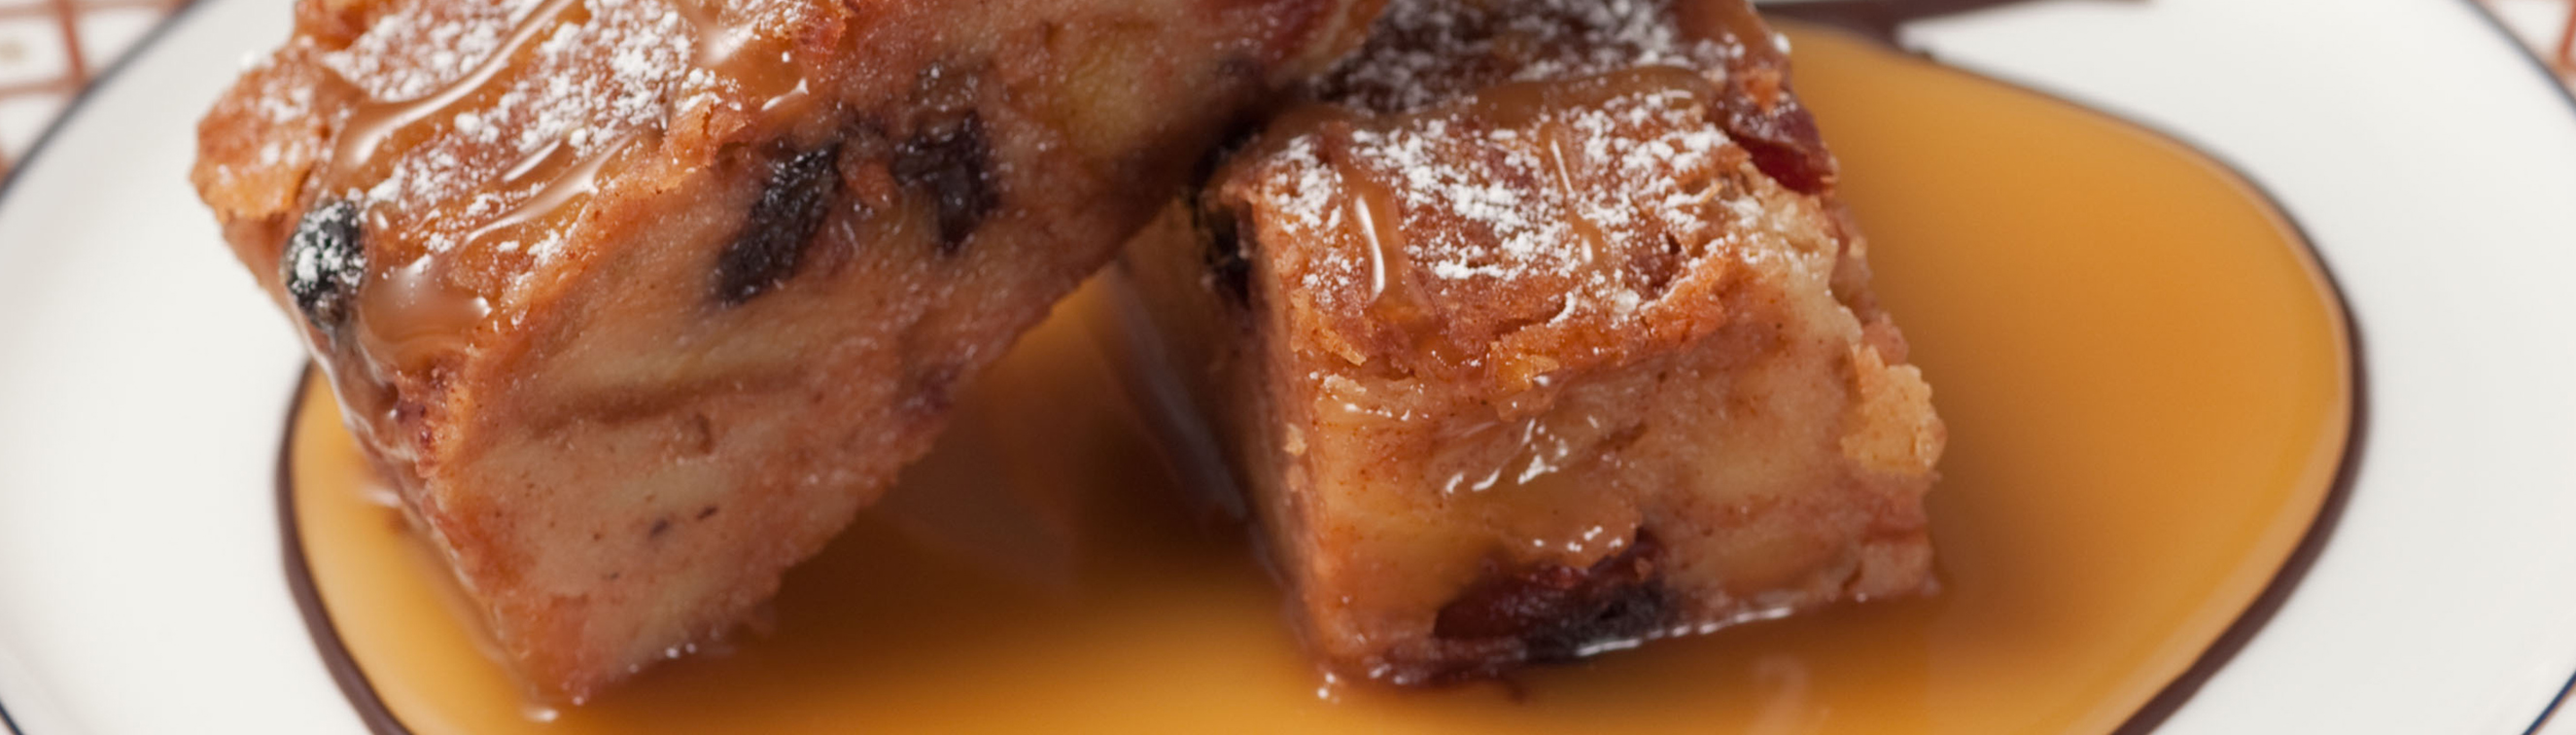 Apple Cinnamon Bread Pudding | In My Kitchen Recipes